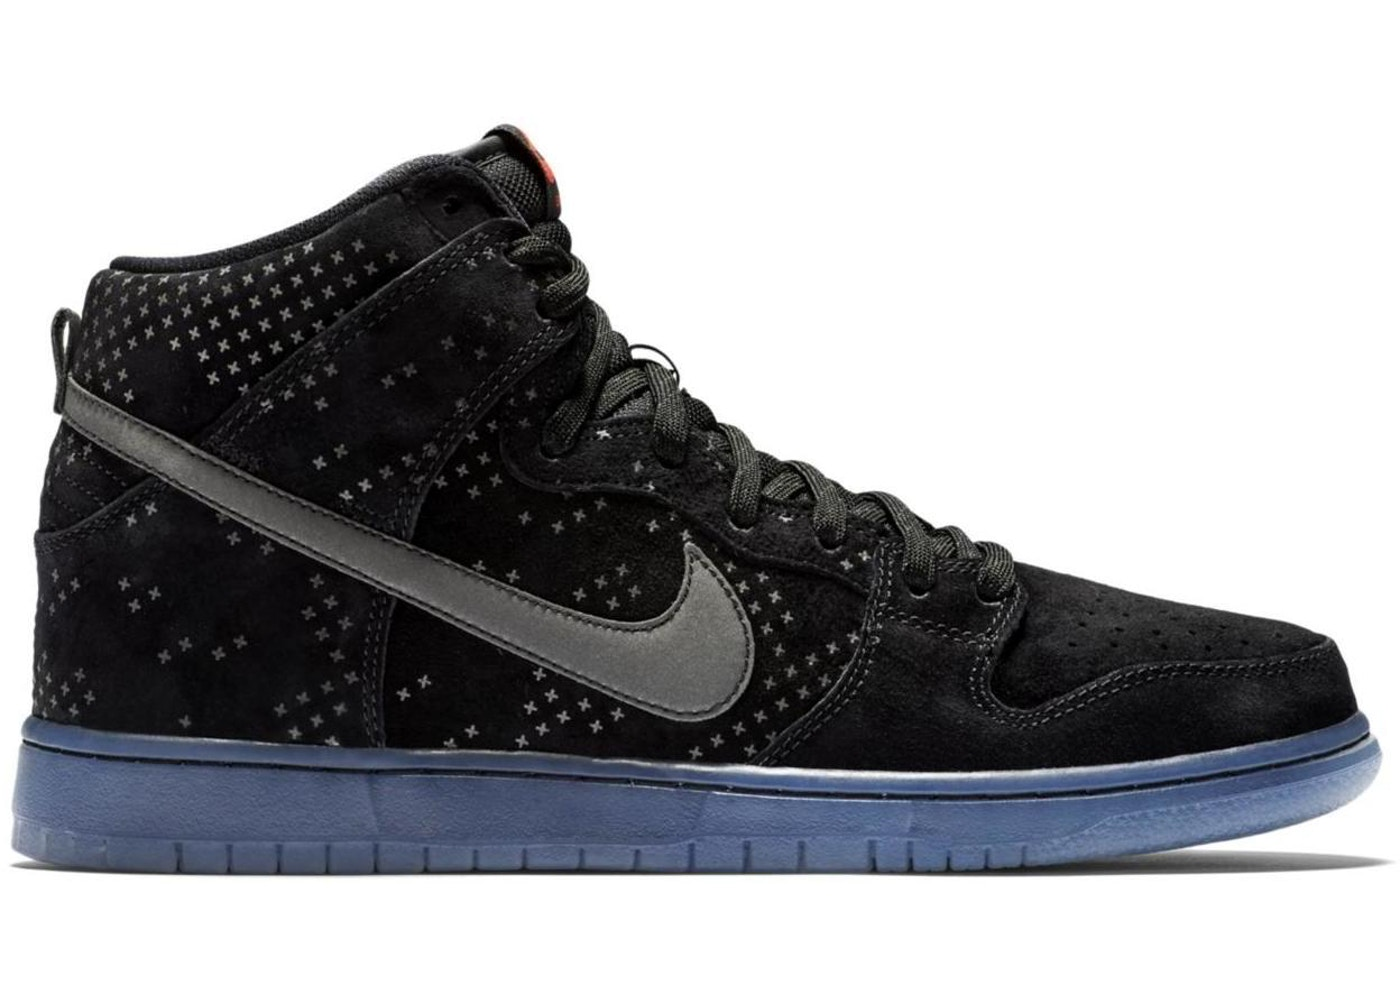 new styles 5efca 6f601 Nike Dunk High Flash Pack Black Ice